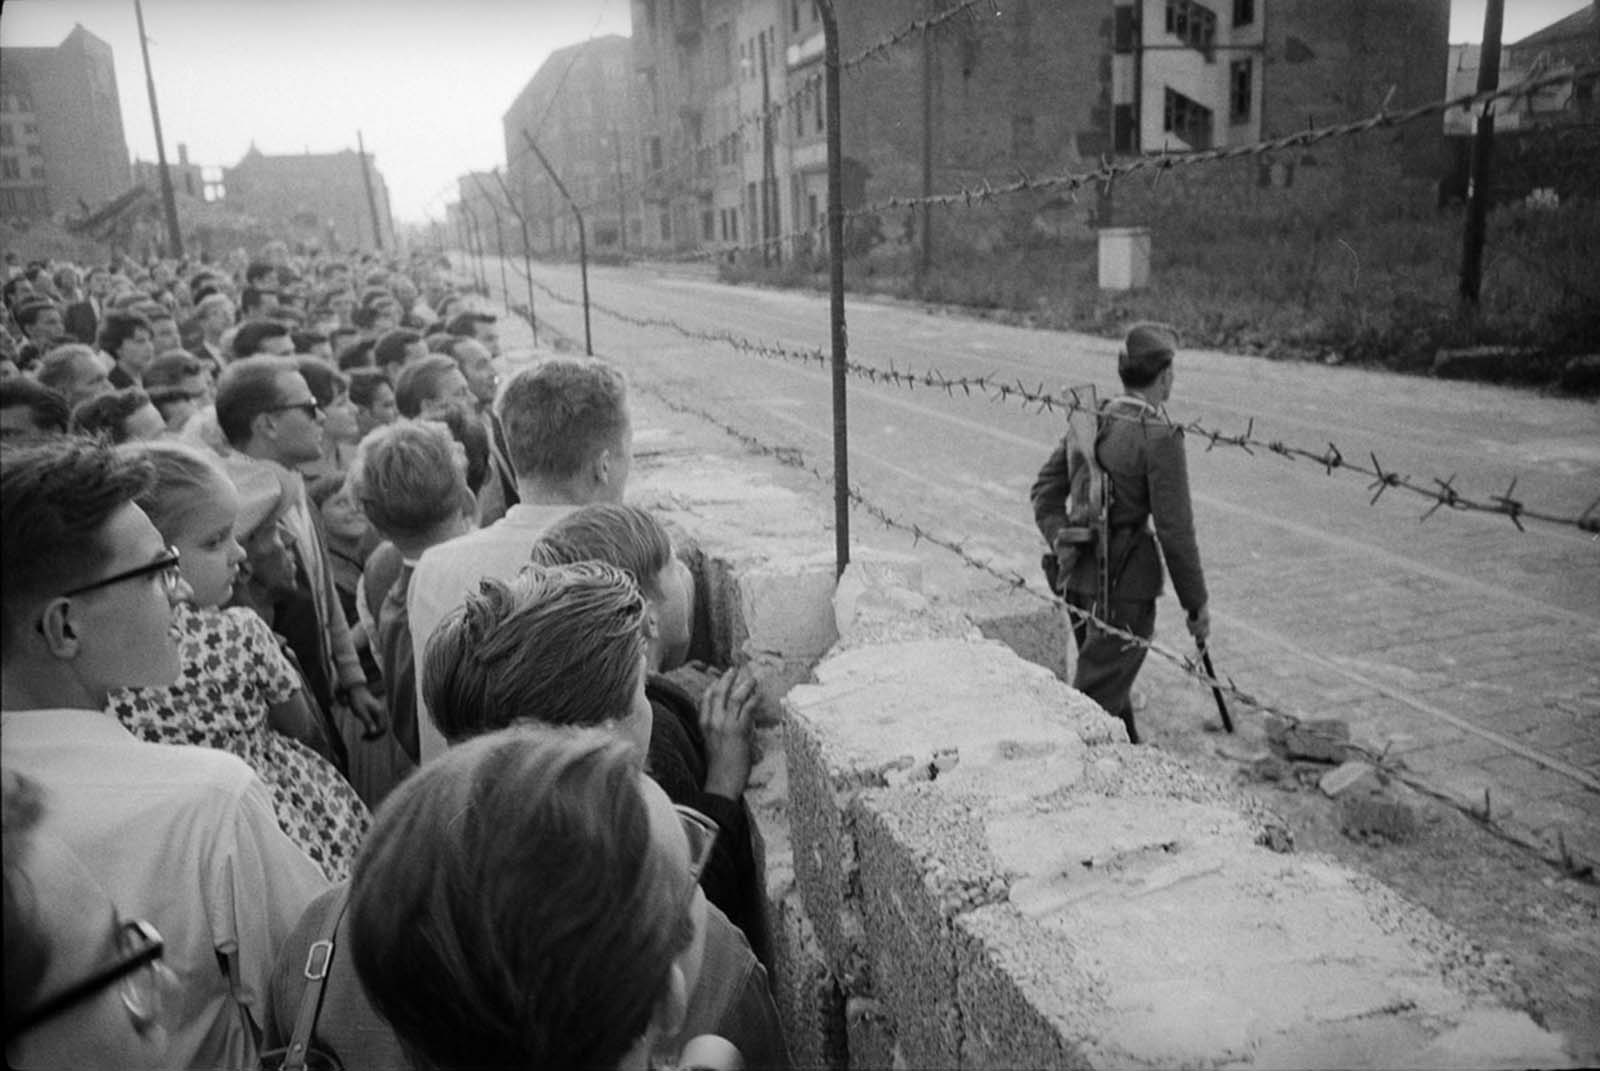 A crowd of West Berliners gathers at the newly erected Berlin Wall while an East German soldier patrols on the other side in August 1961